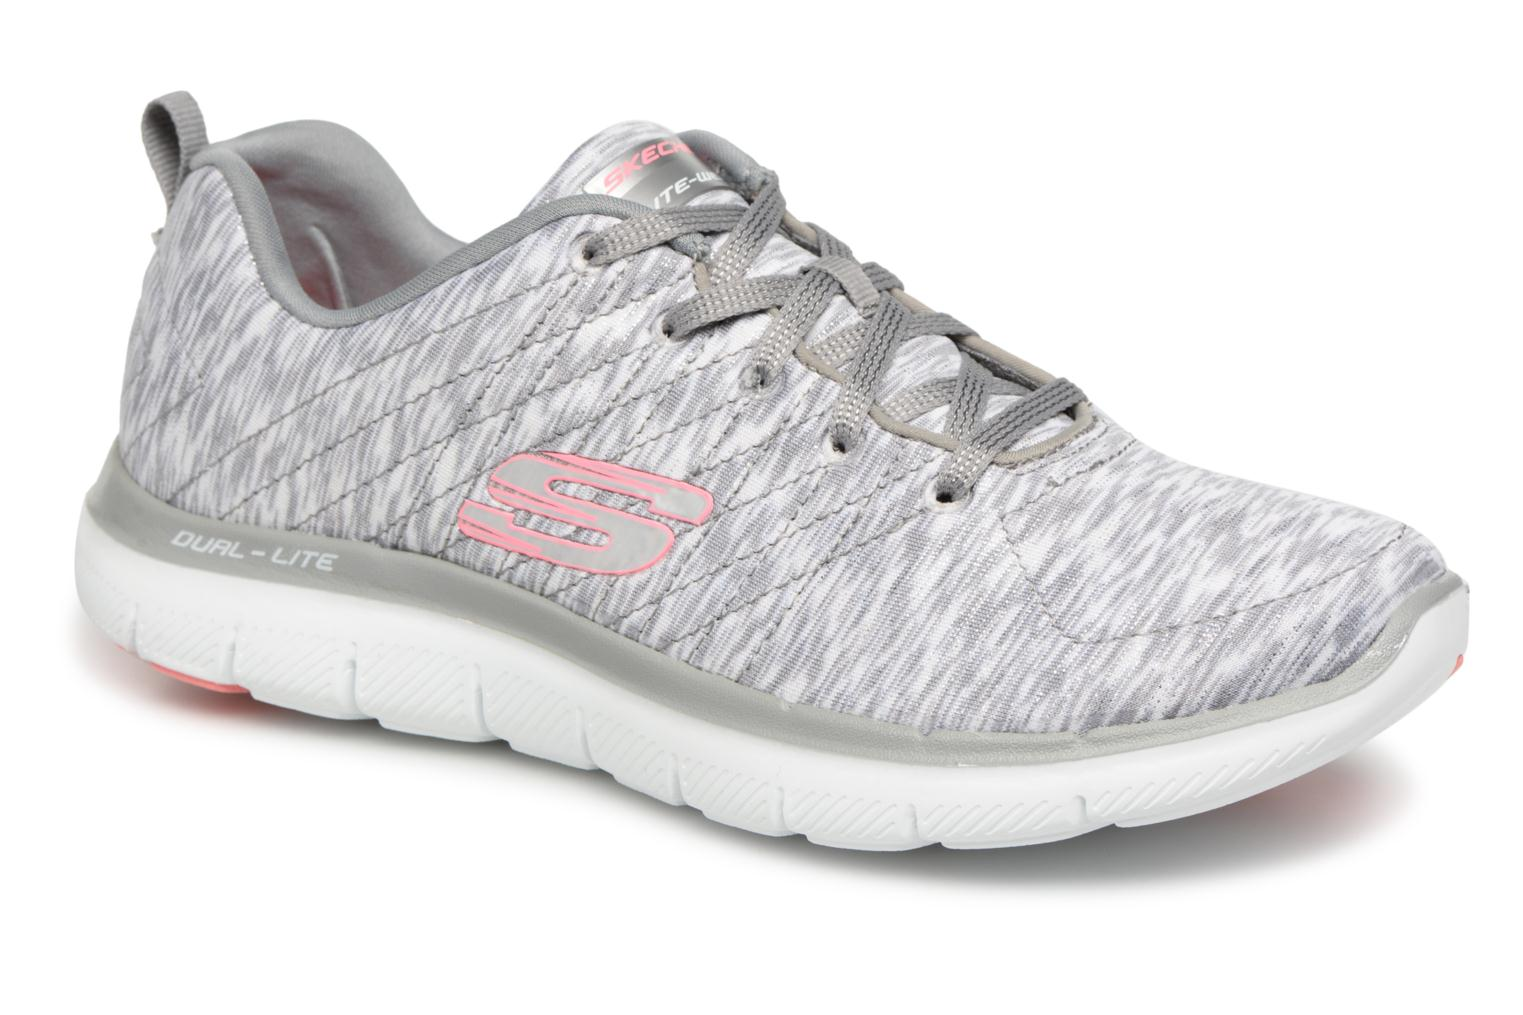 Scarpe sportive Donna Flex Appeal 2.0 Reflection